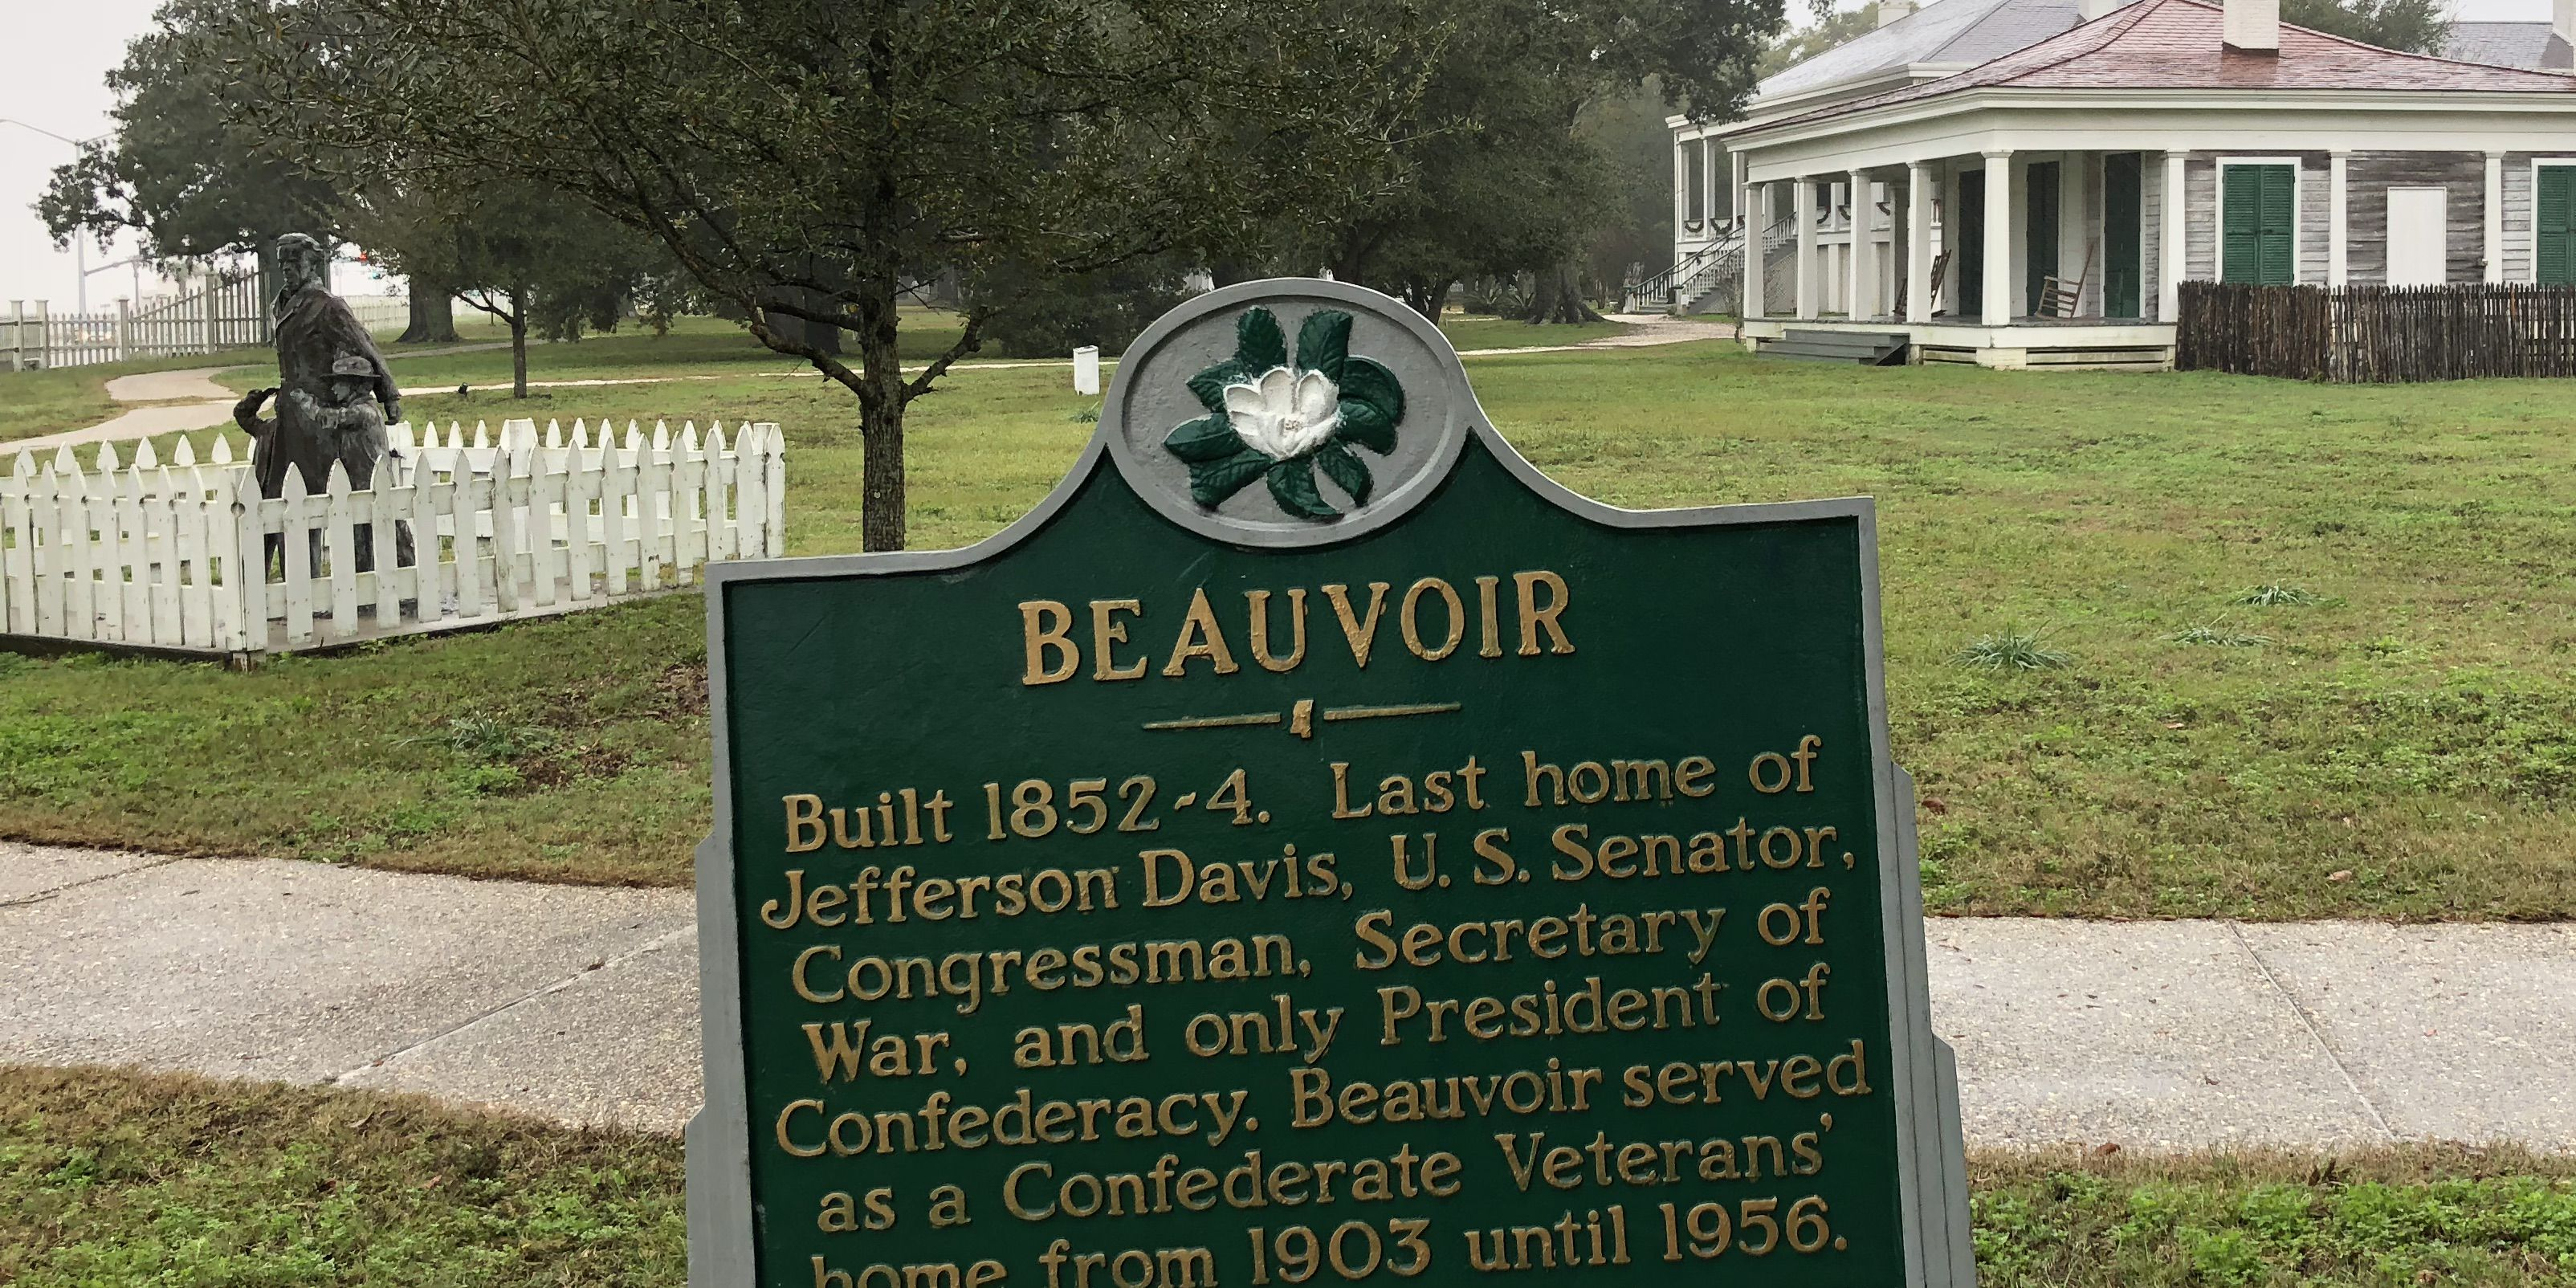 Beauvoir's New Year's resolution: Hire a new executive director